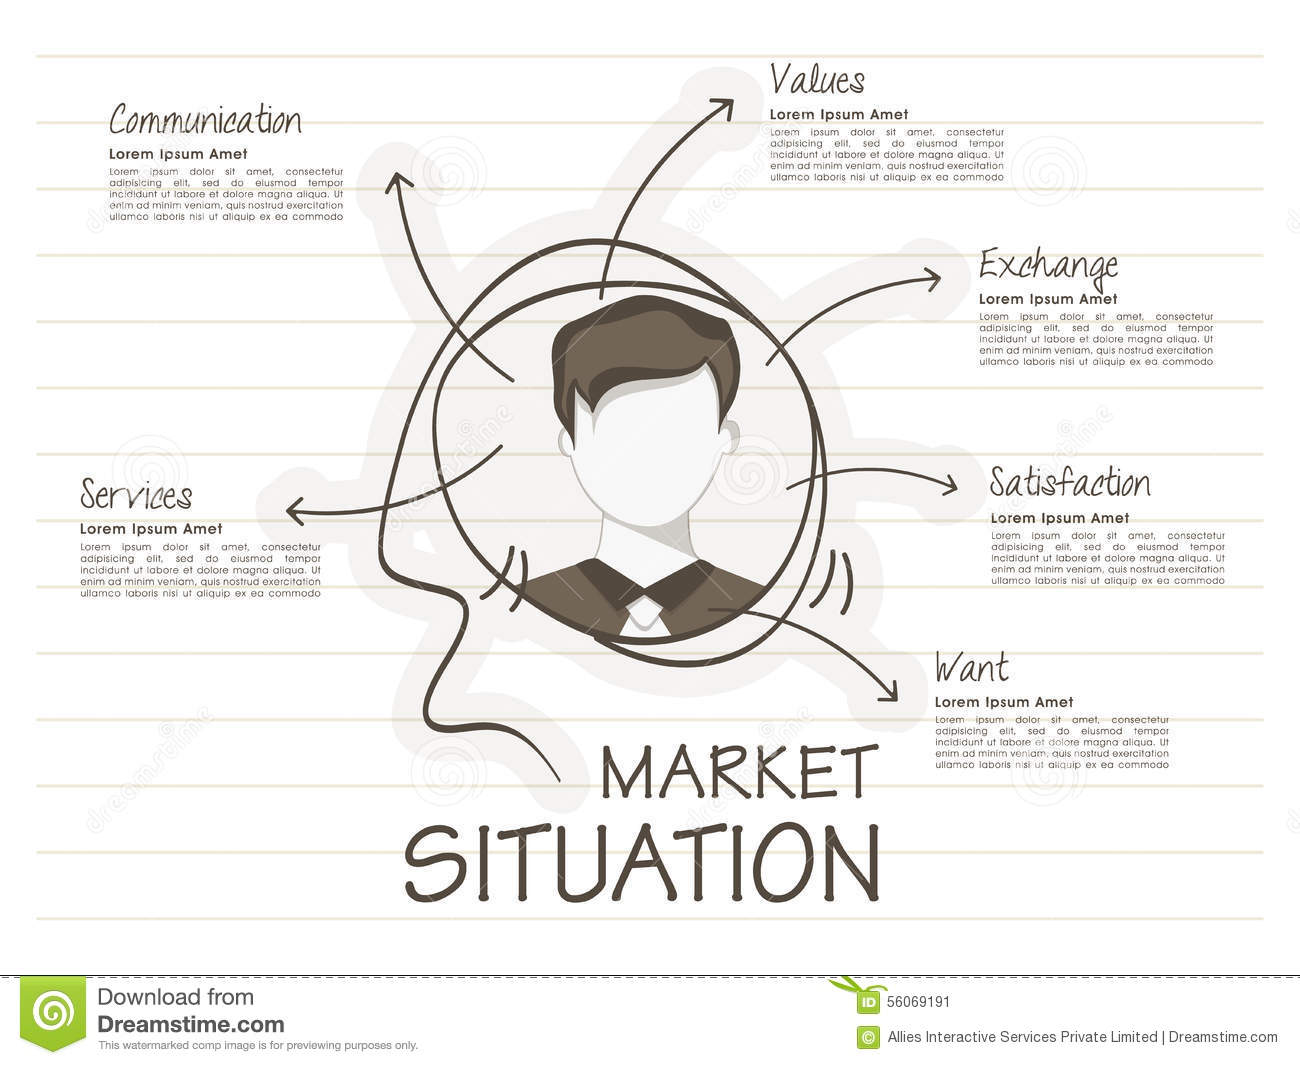 situation analysis target market identification report for Template for a basic marketing plan, including situation analysis, market segmentation, alternatives, recommended strategy, and implications of that strategy.